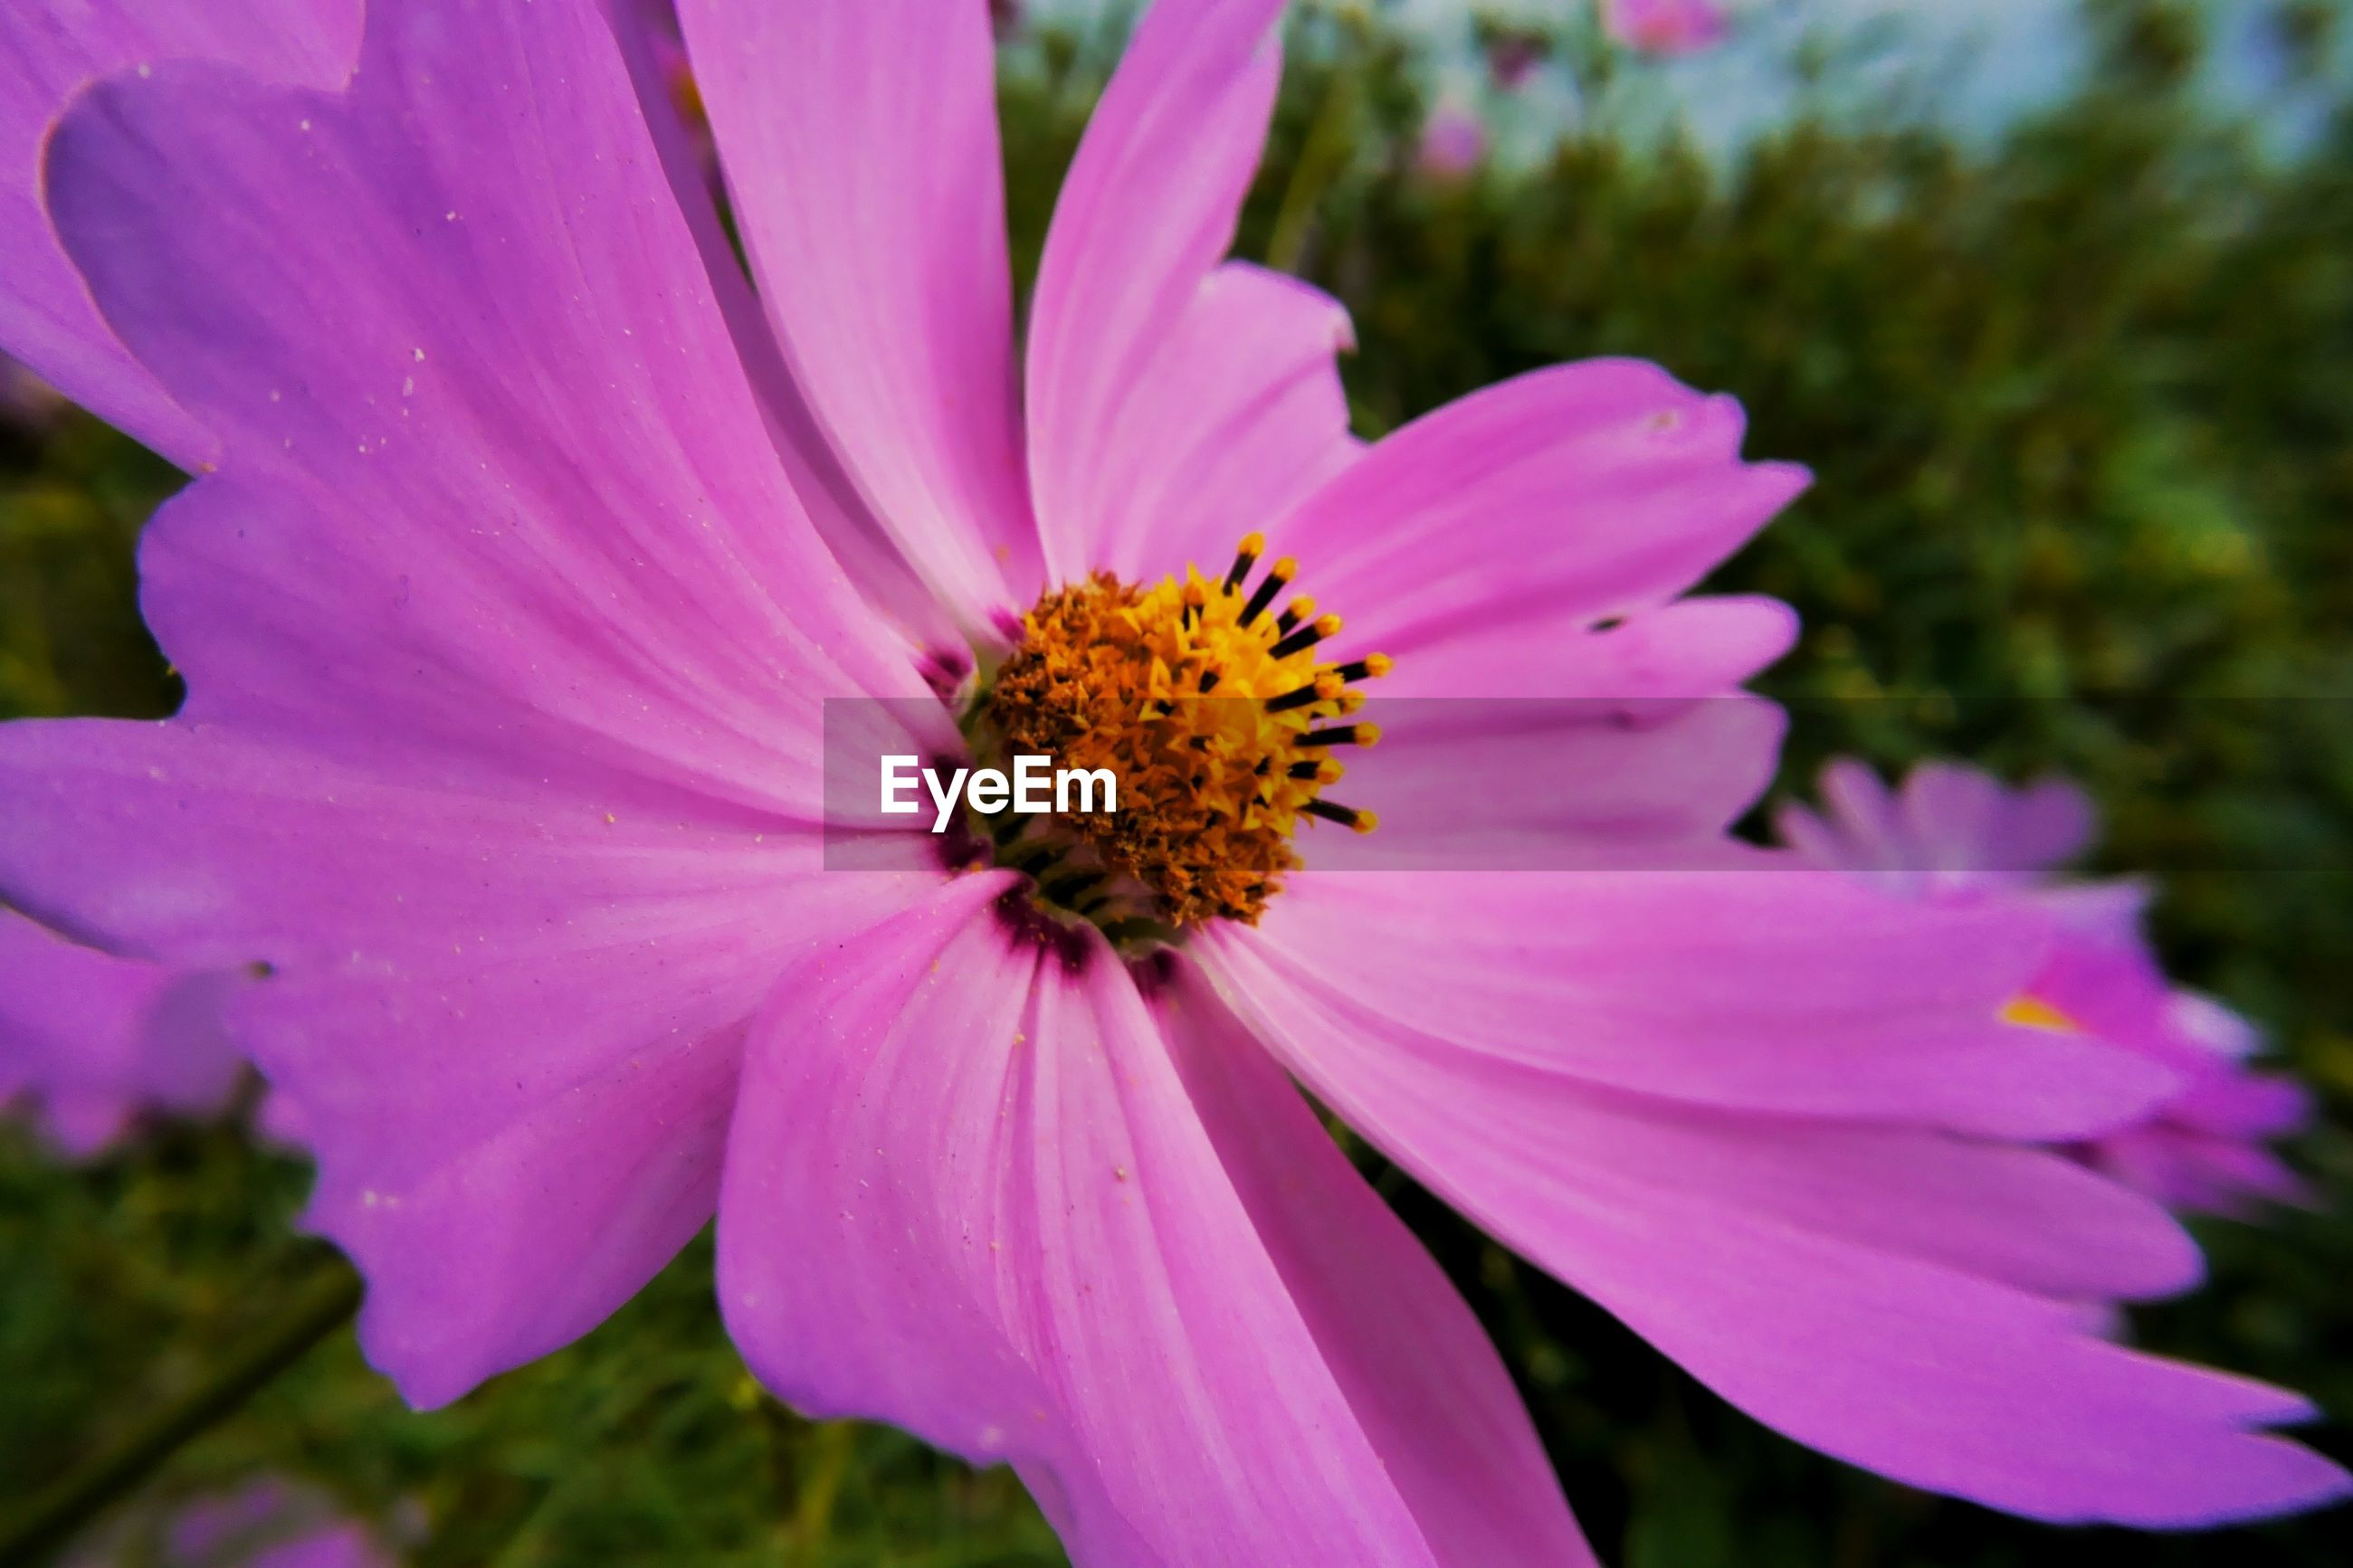 CLOSE-UP OF HONEY BEE POLLINATING ON PINK DAISY